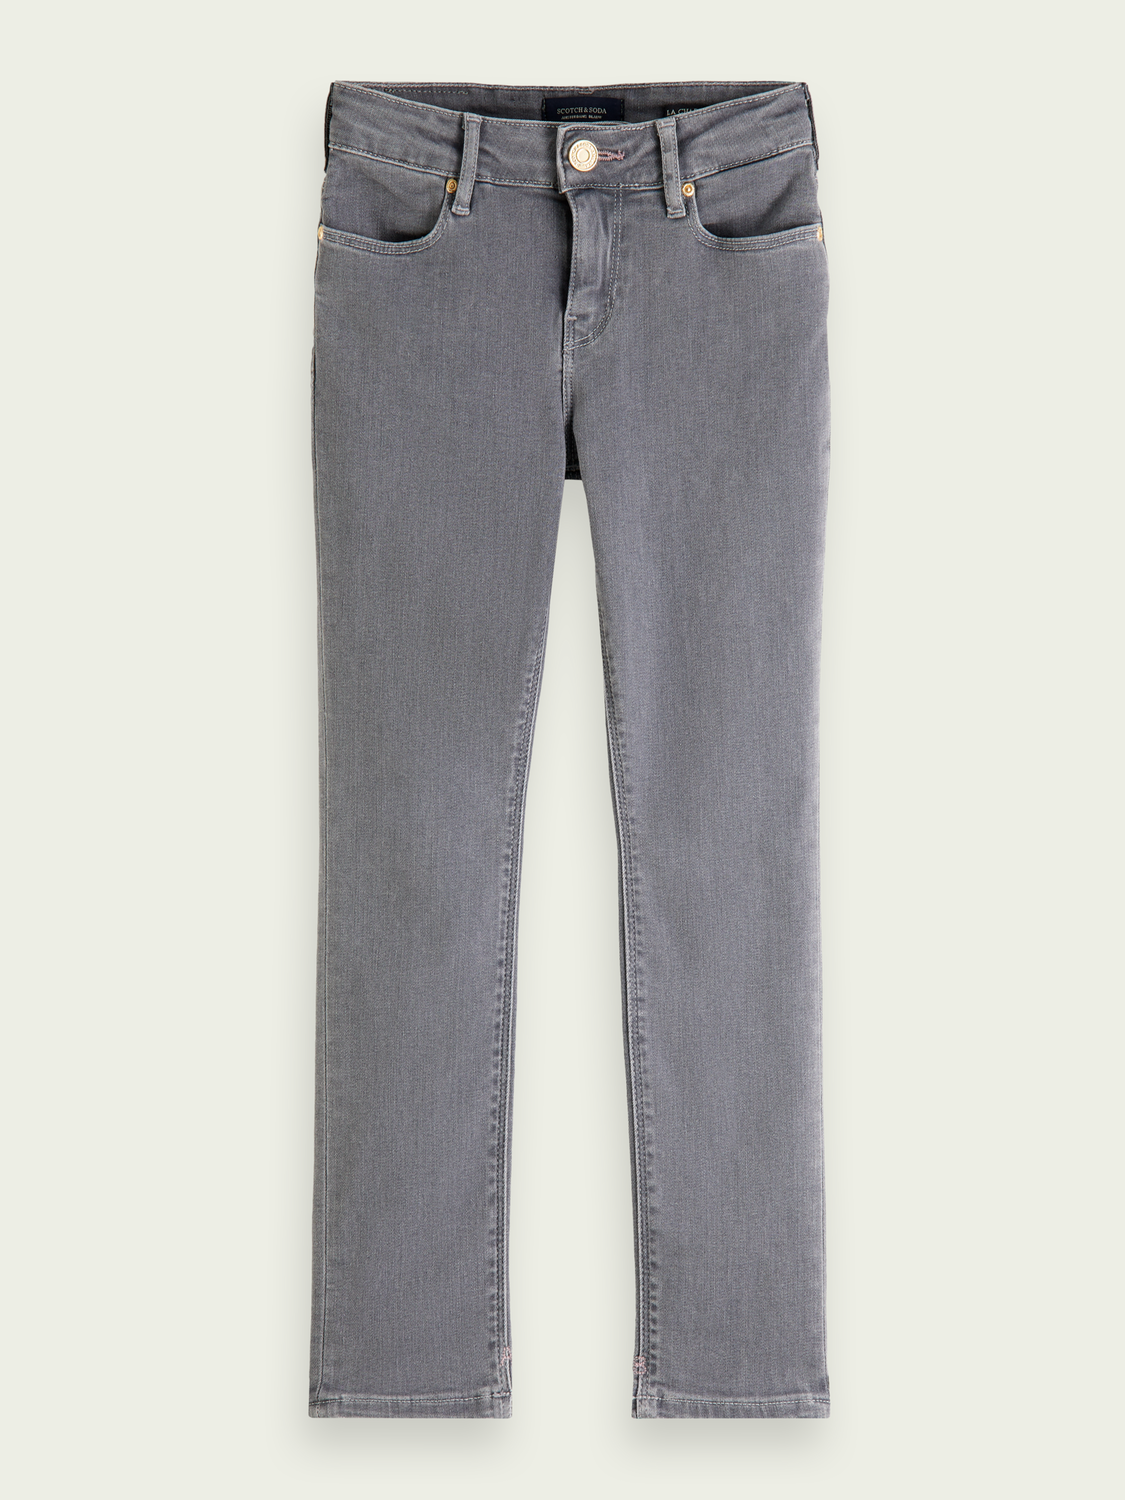 Kids La Charmante high-rise skinny-fit jeans ─ Back To My Roots